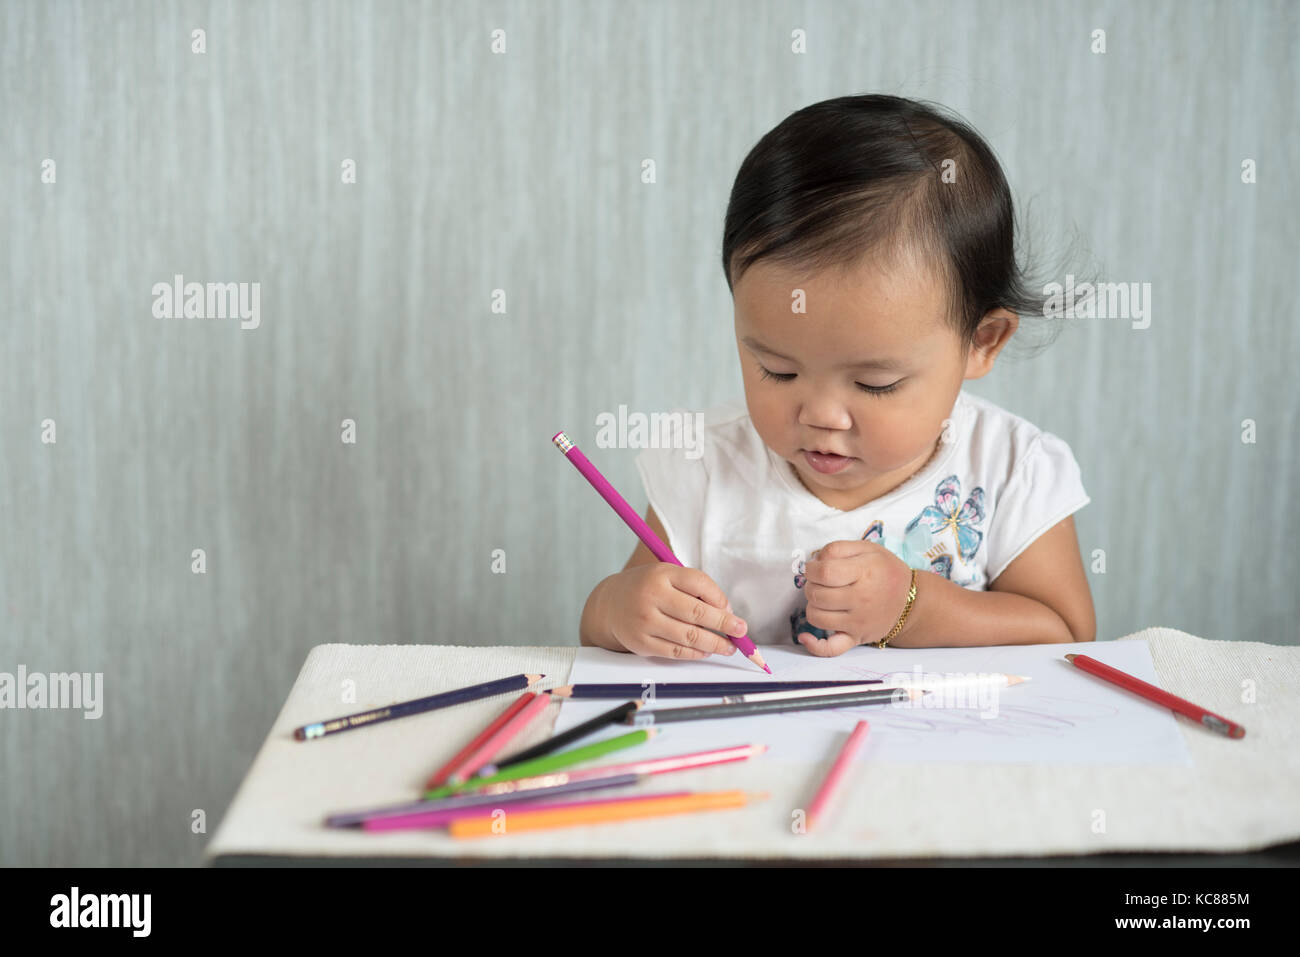 asian toddler / baby girl is having fun learning to use pencils. Education concept. human growth concept. Stock Photo